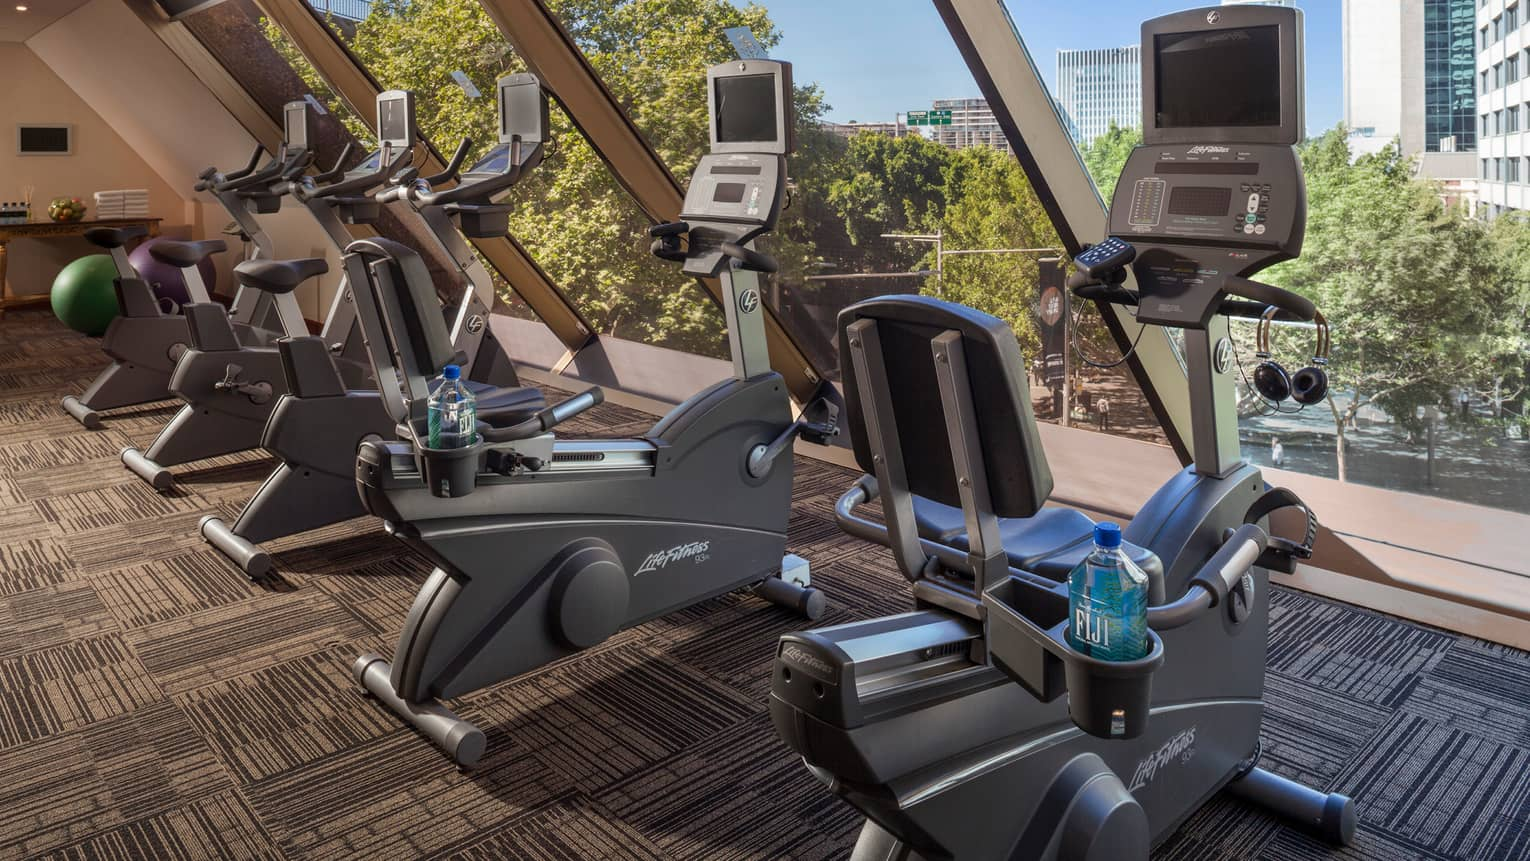 Cardio bikes, machines lined up by window in Fitness Centre